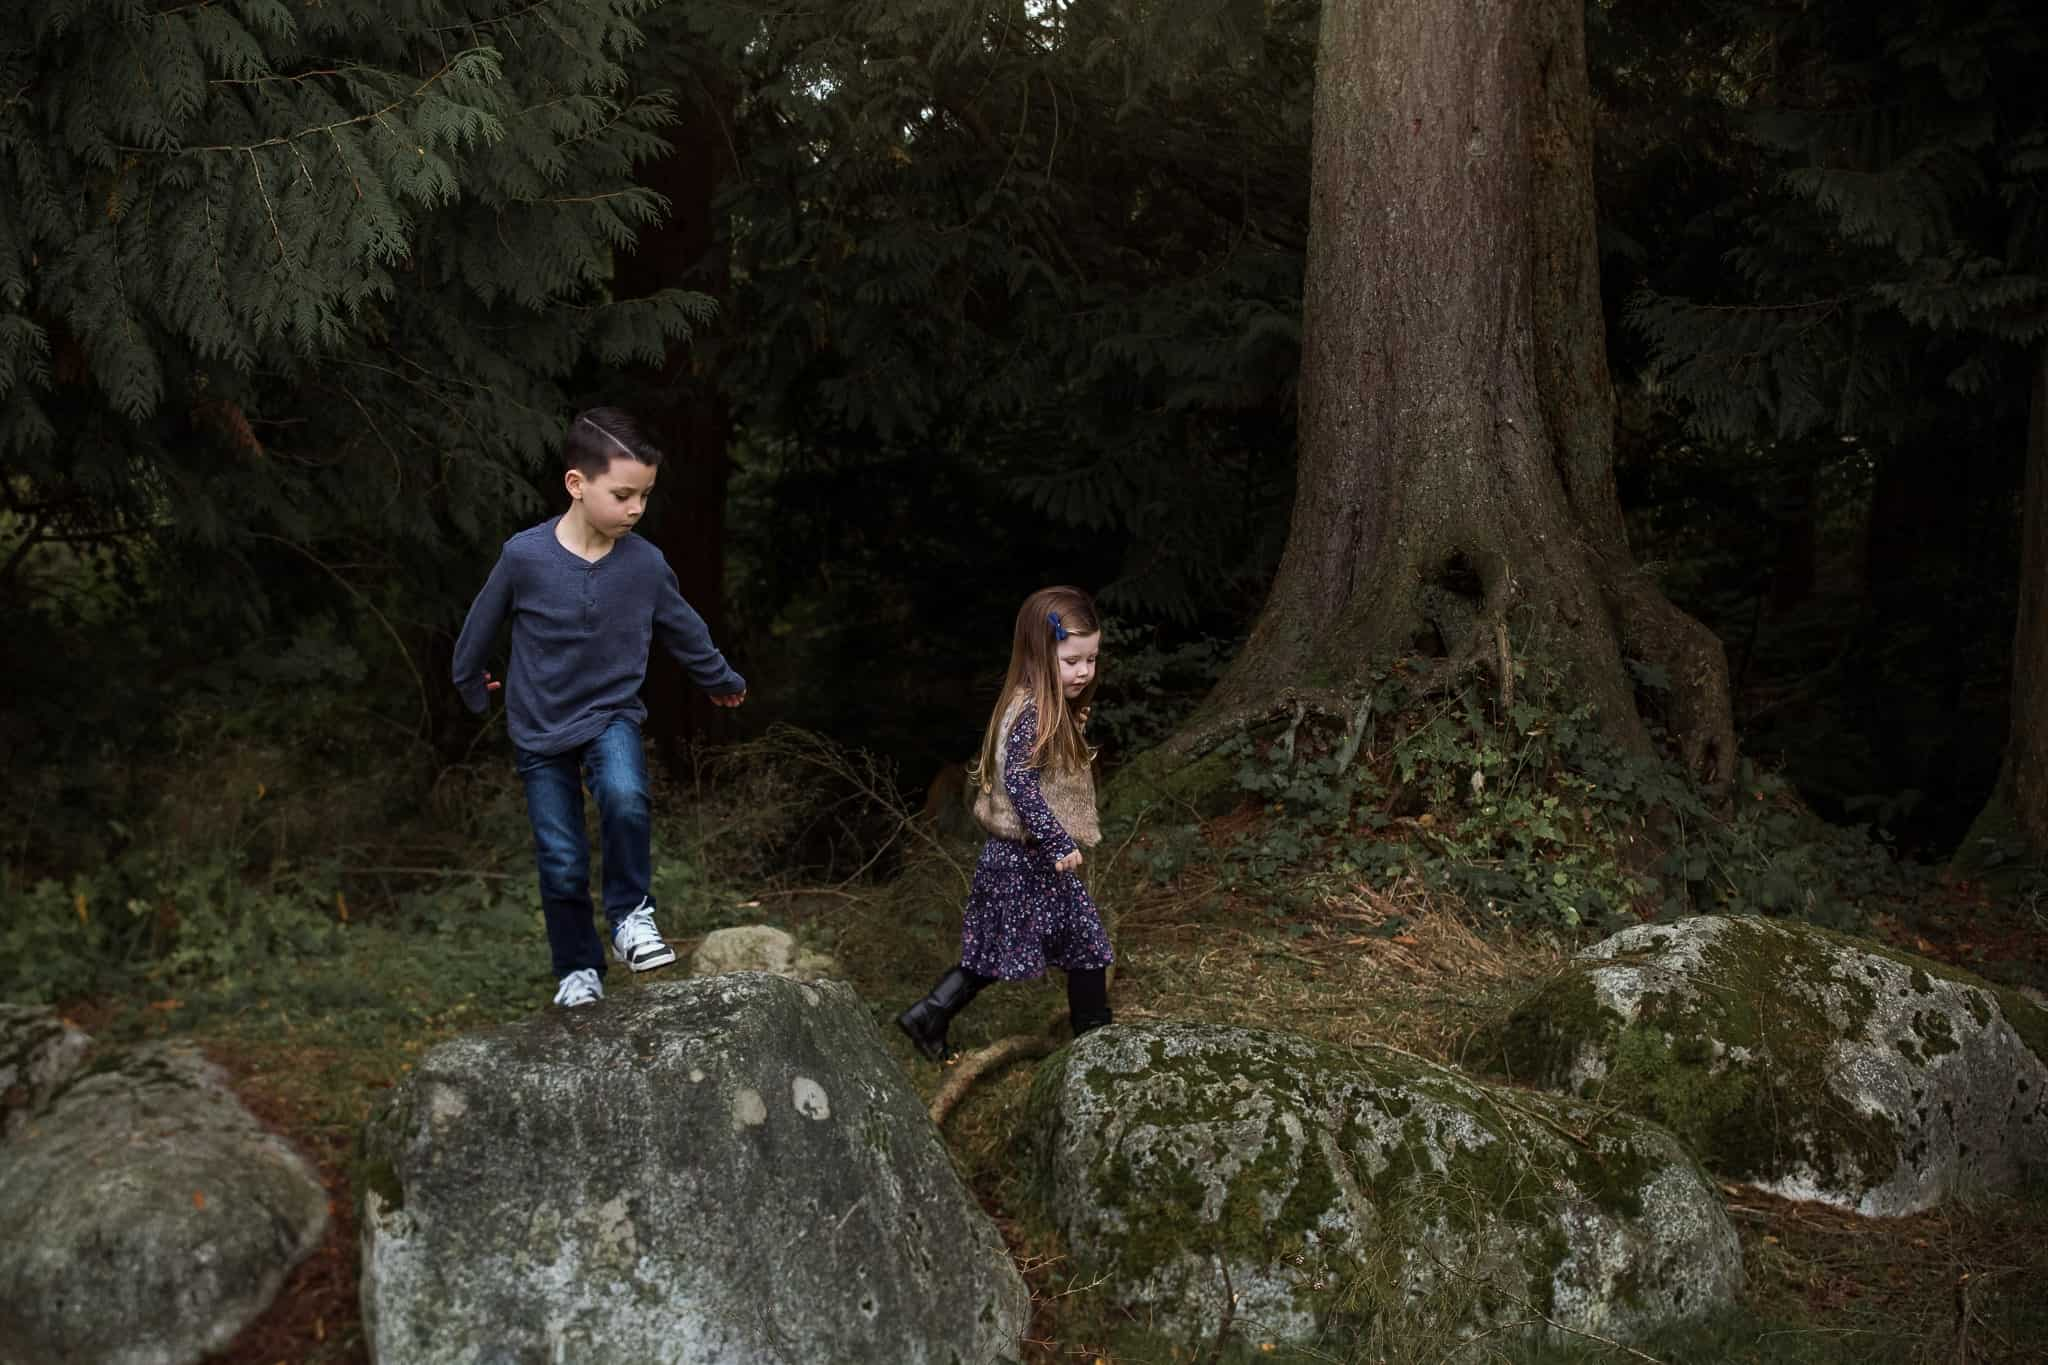 brother and sister hoping on rocks in a forest